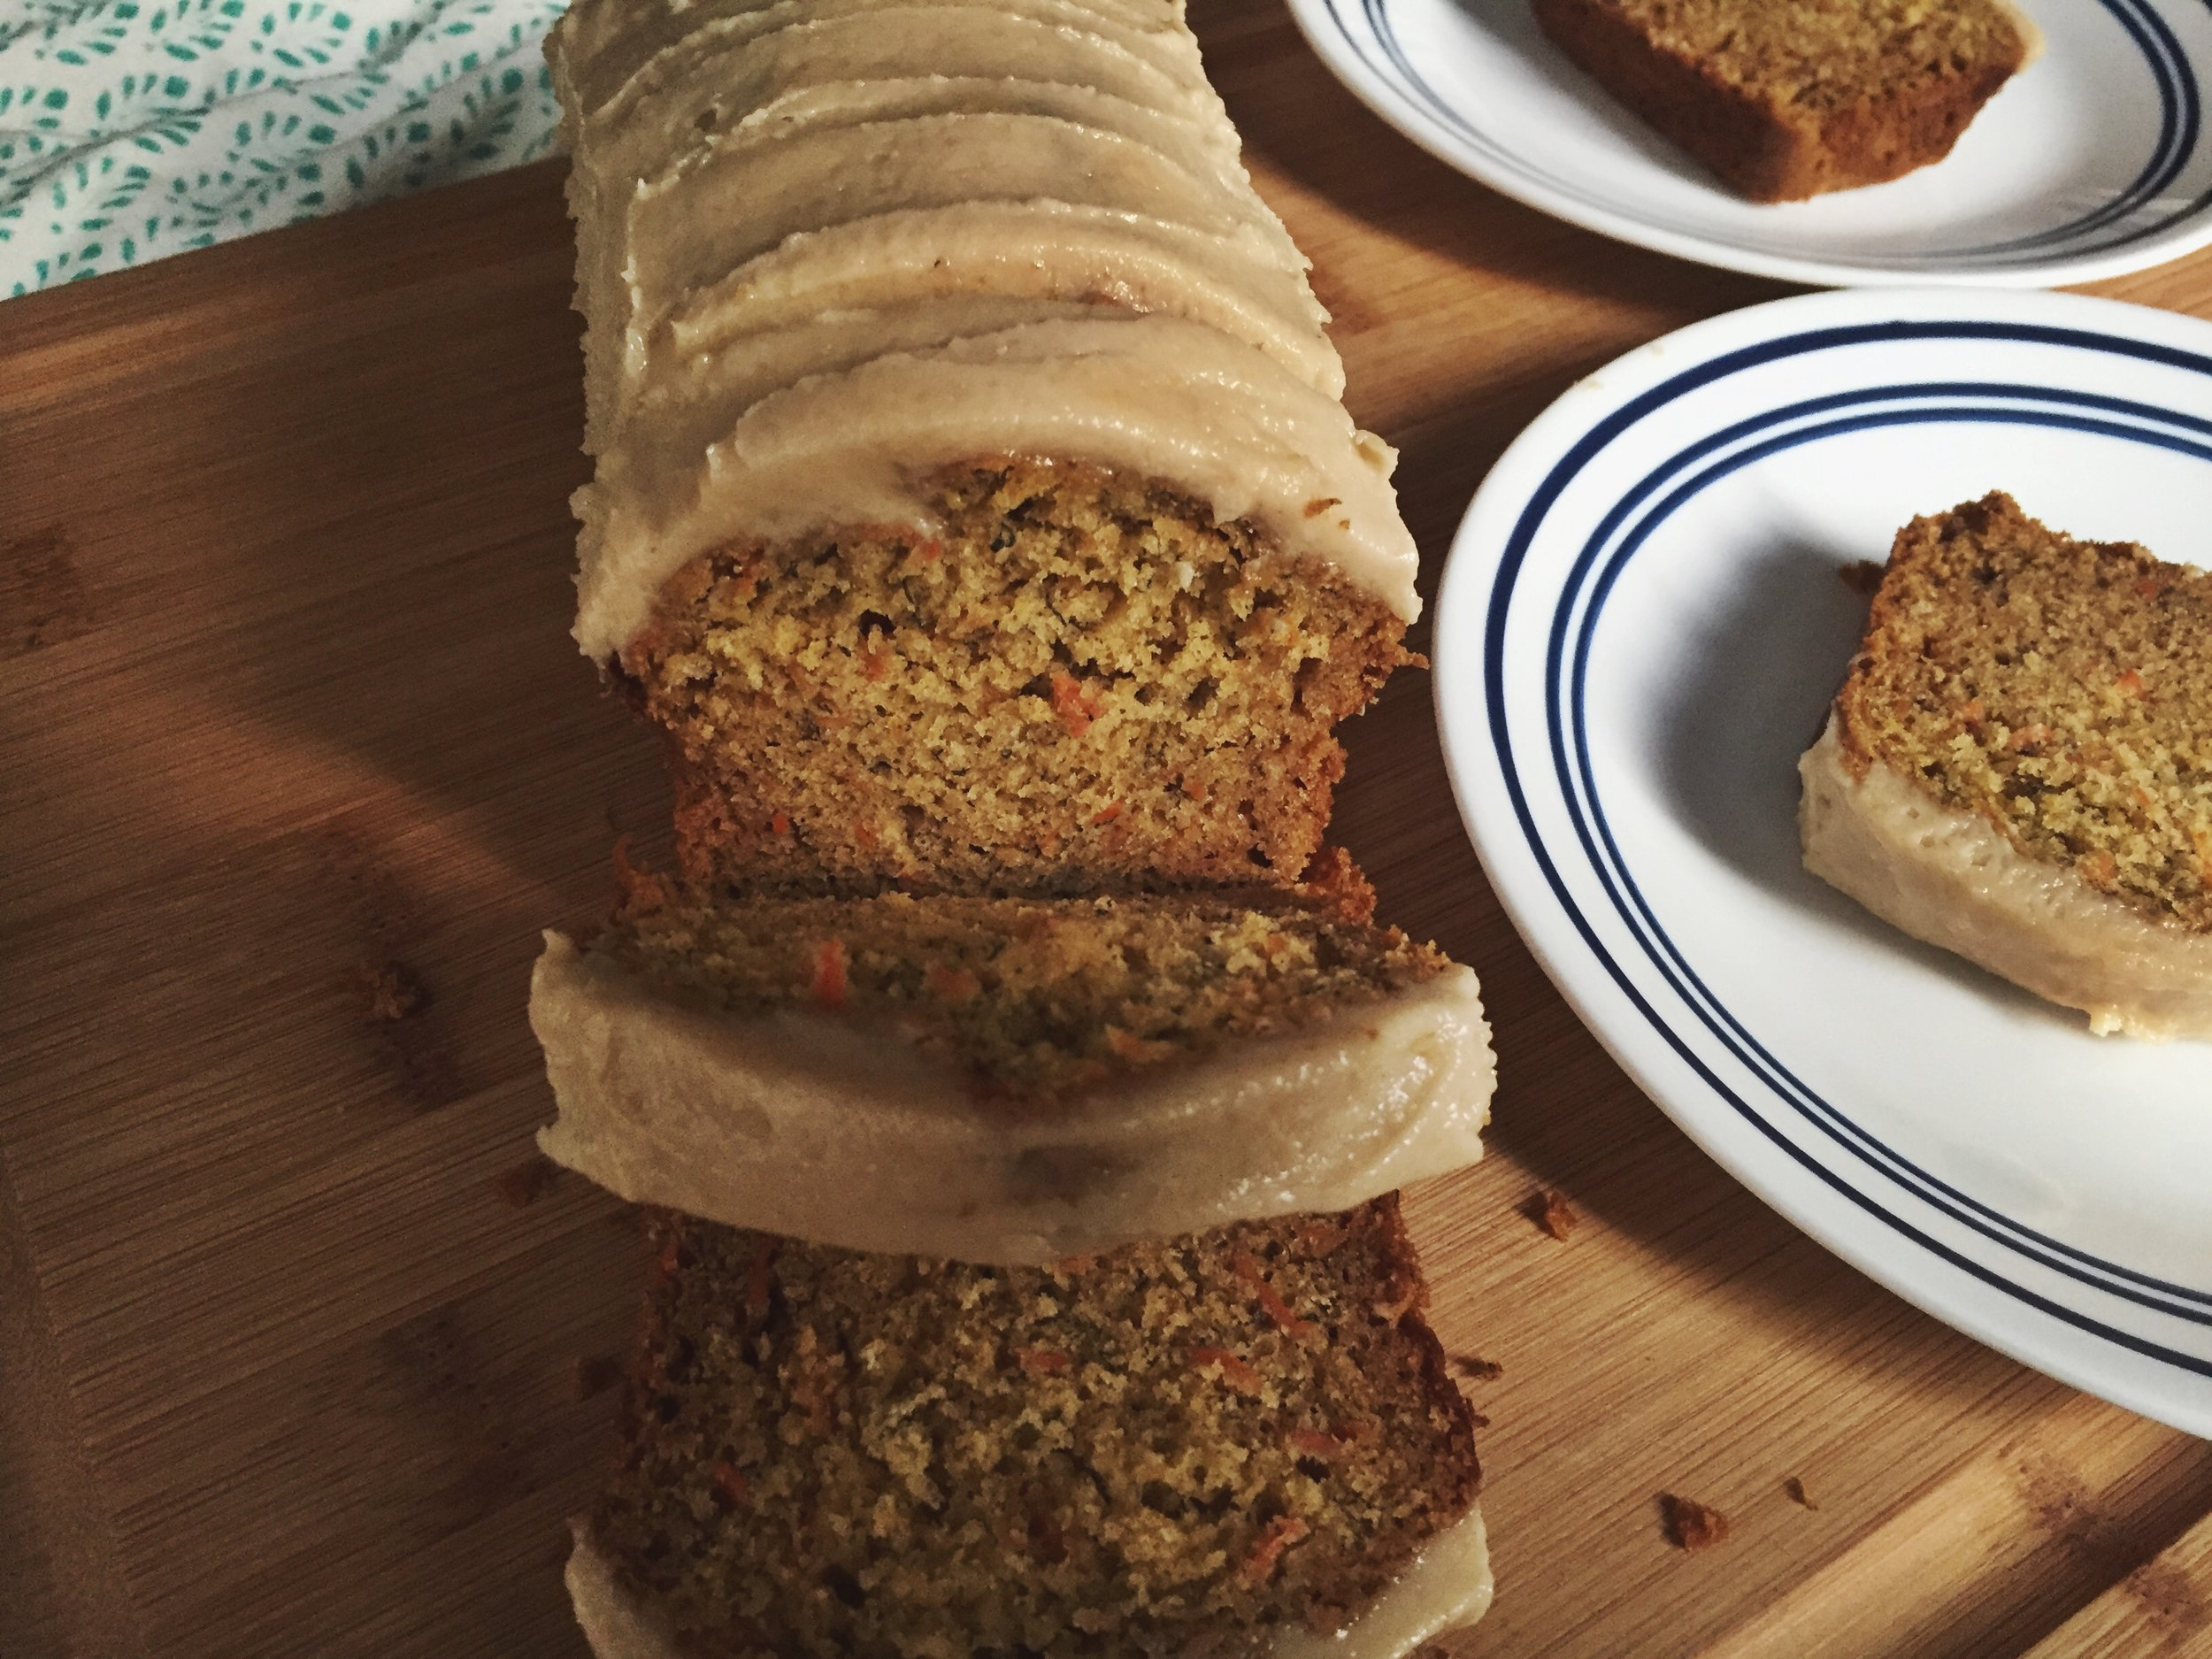 banana-carrot-cake-slices-perspective